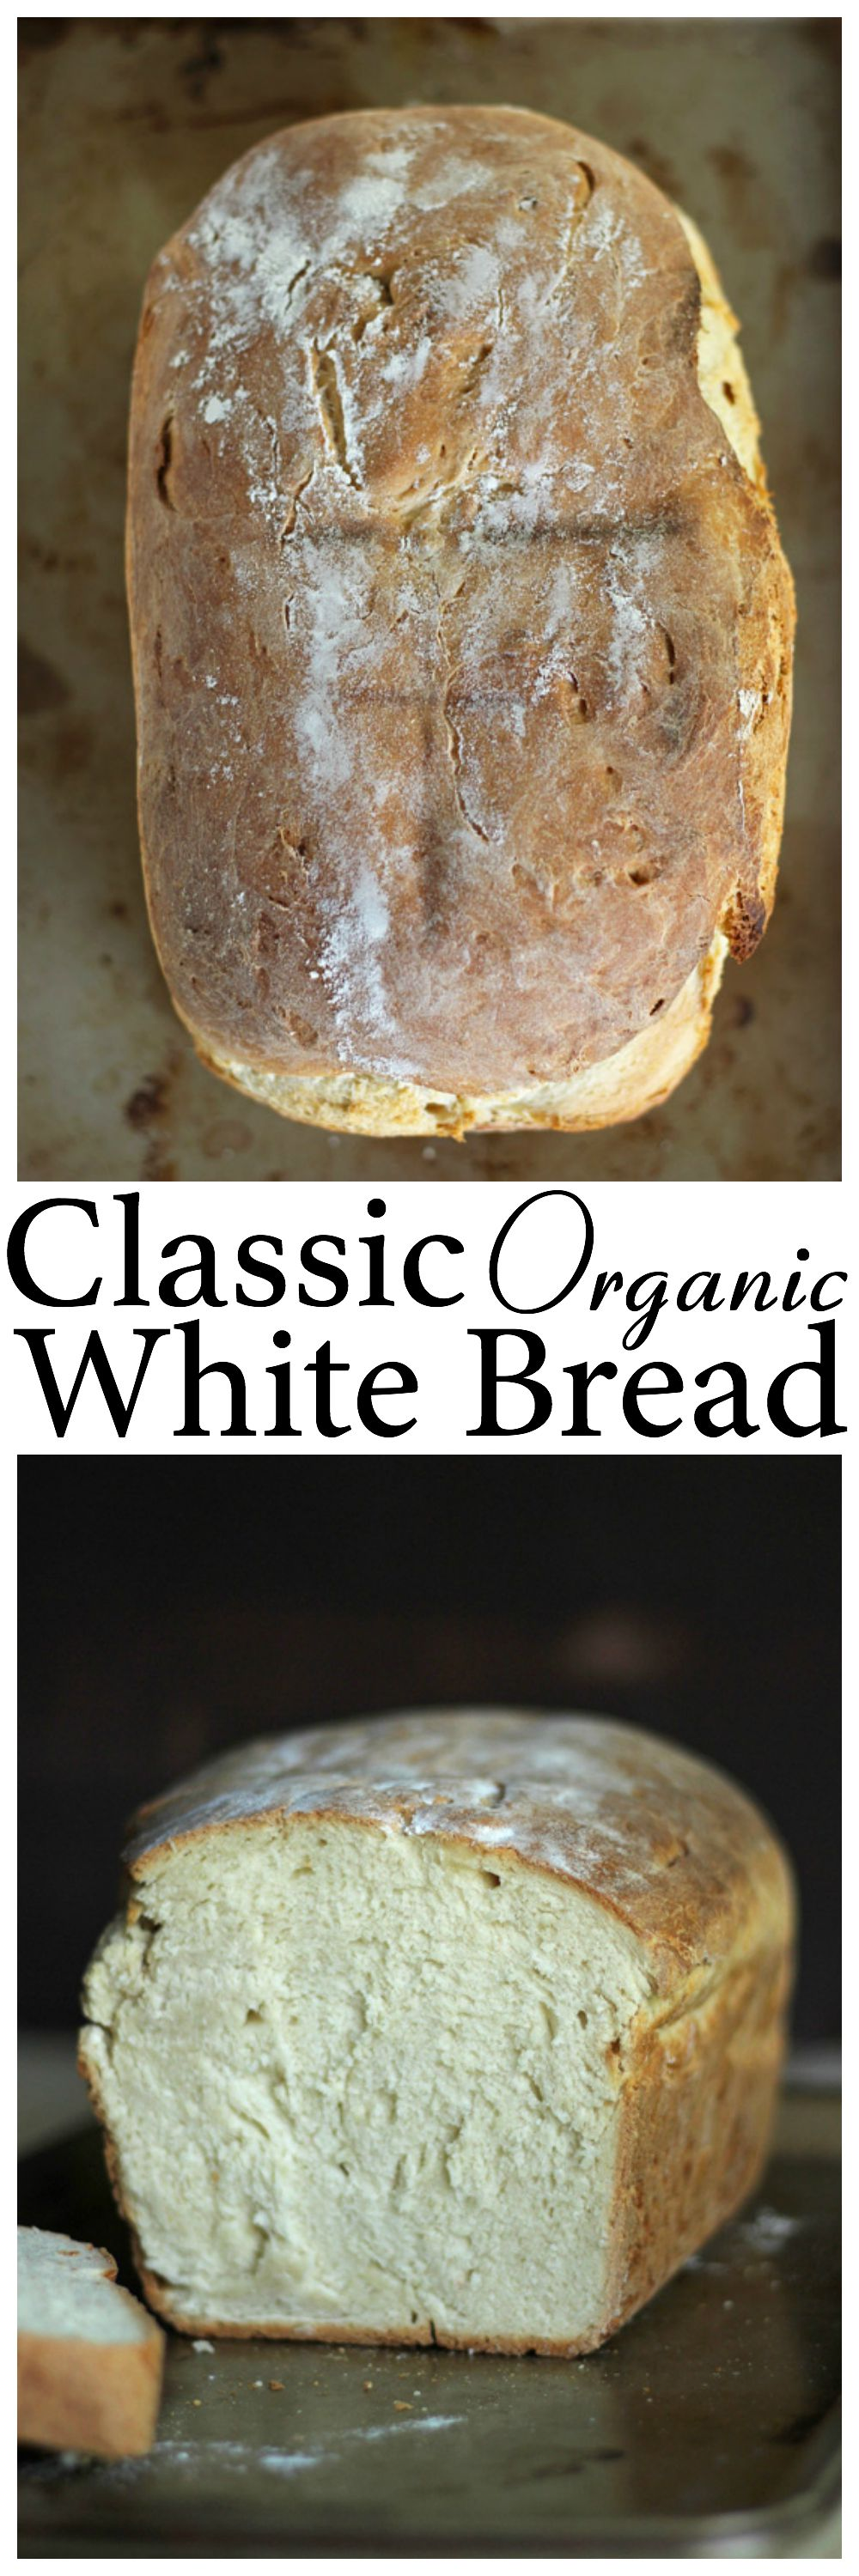 Classic Organic White Bread. neuroticmommy.com